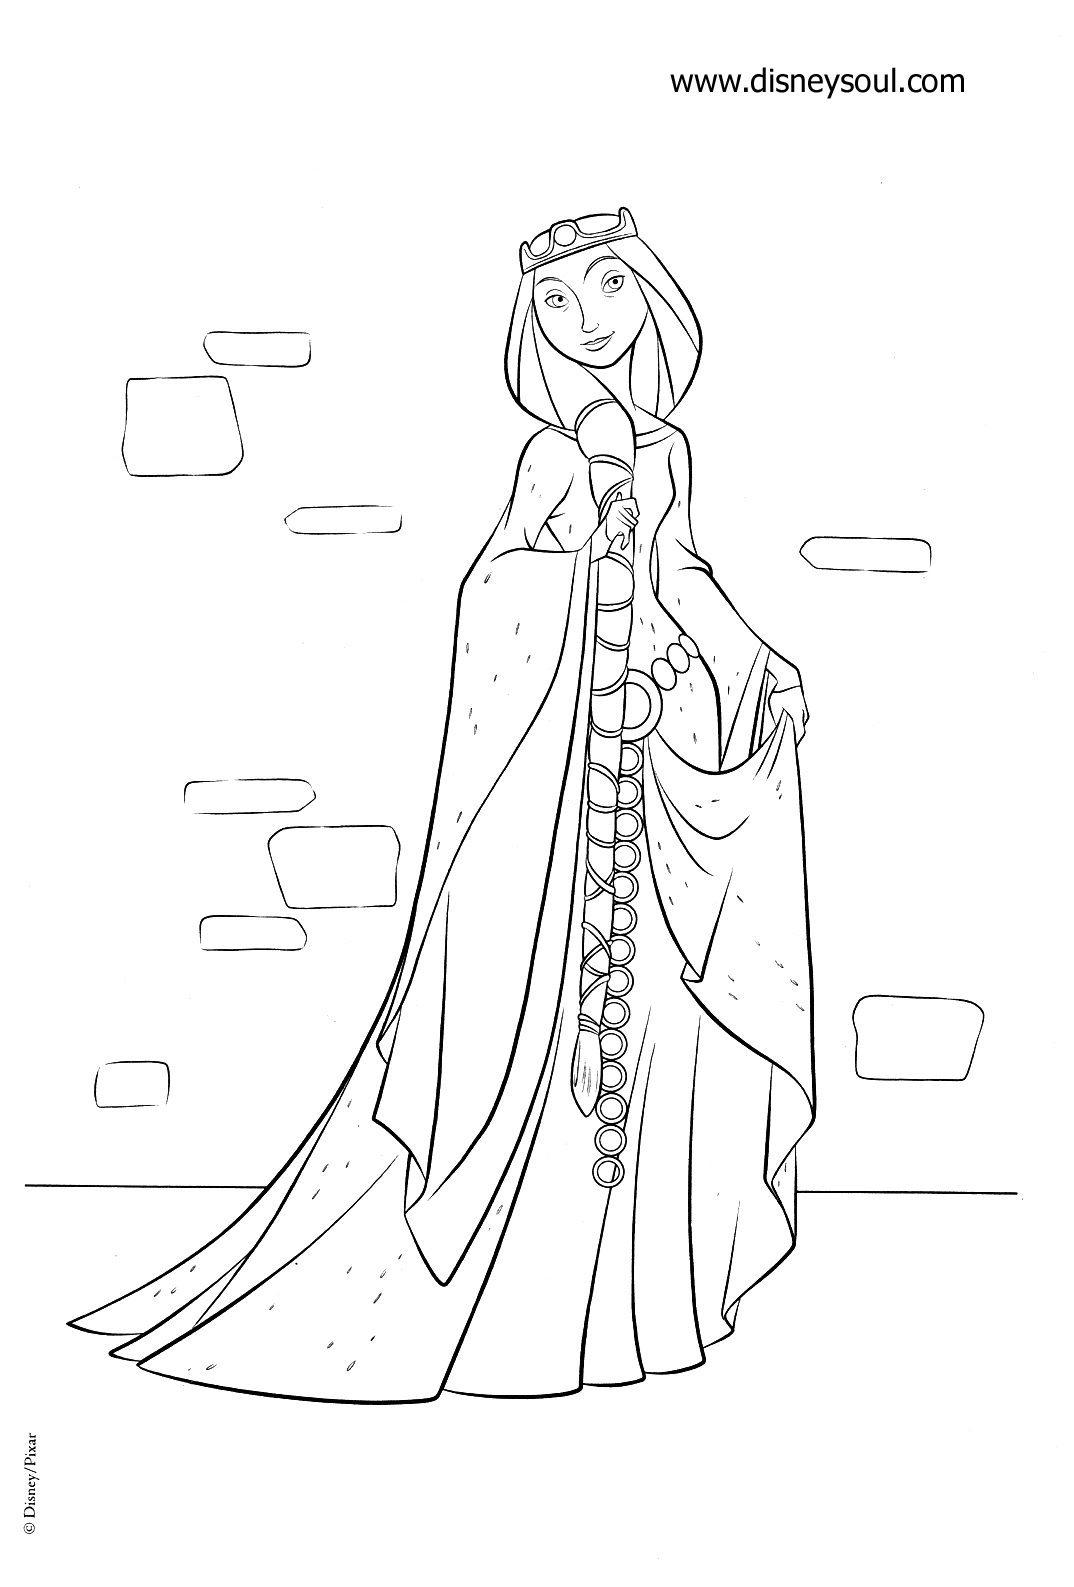 jascode coloring pages - photo#13